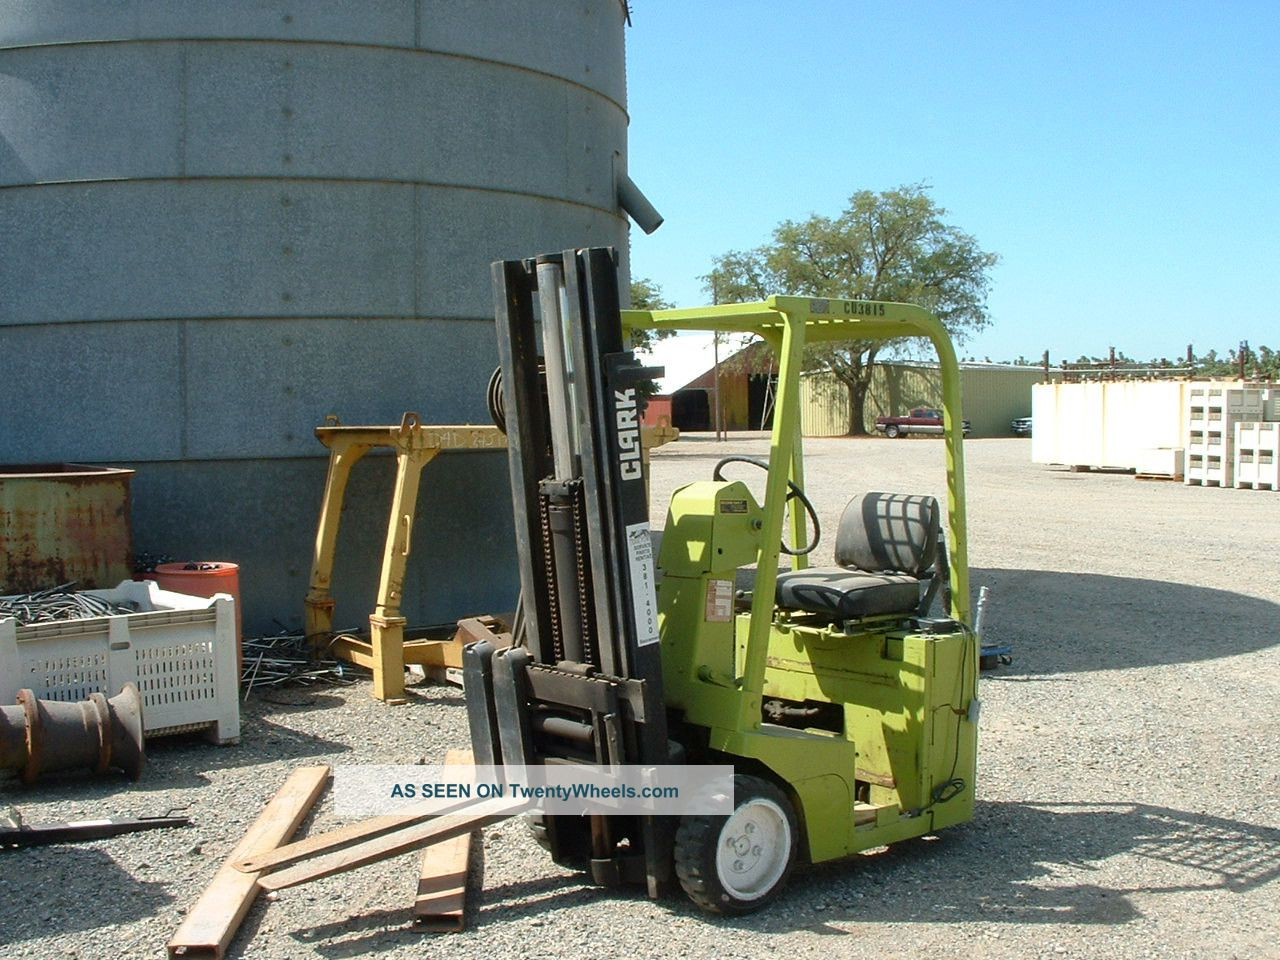 24866 Nifty lift sp34 boom lift 4x4 dieselelectric together with Roll off trailer Roll off trailers besides Solidstand seeders further 24869 91 vermeer t655 trencher moreover Diamond Mowers. on drop deck semi trailers agriculture